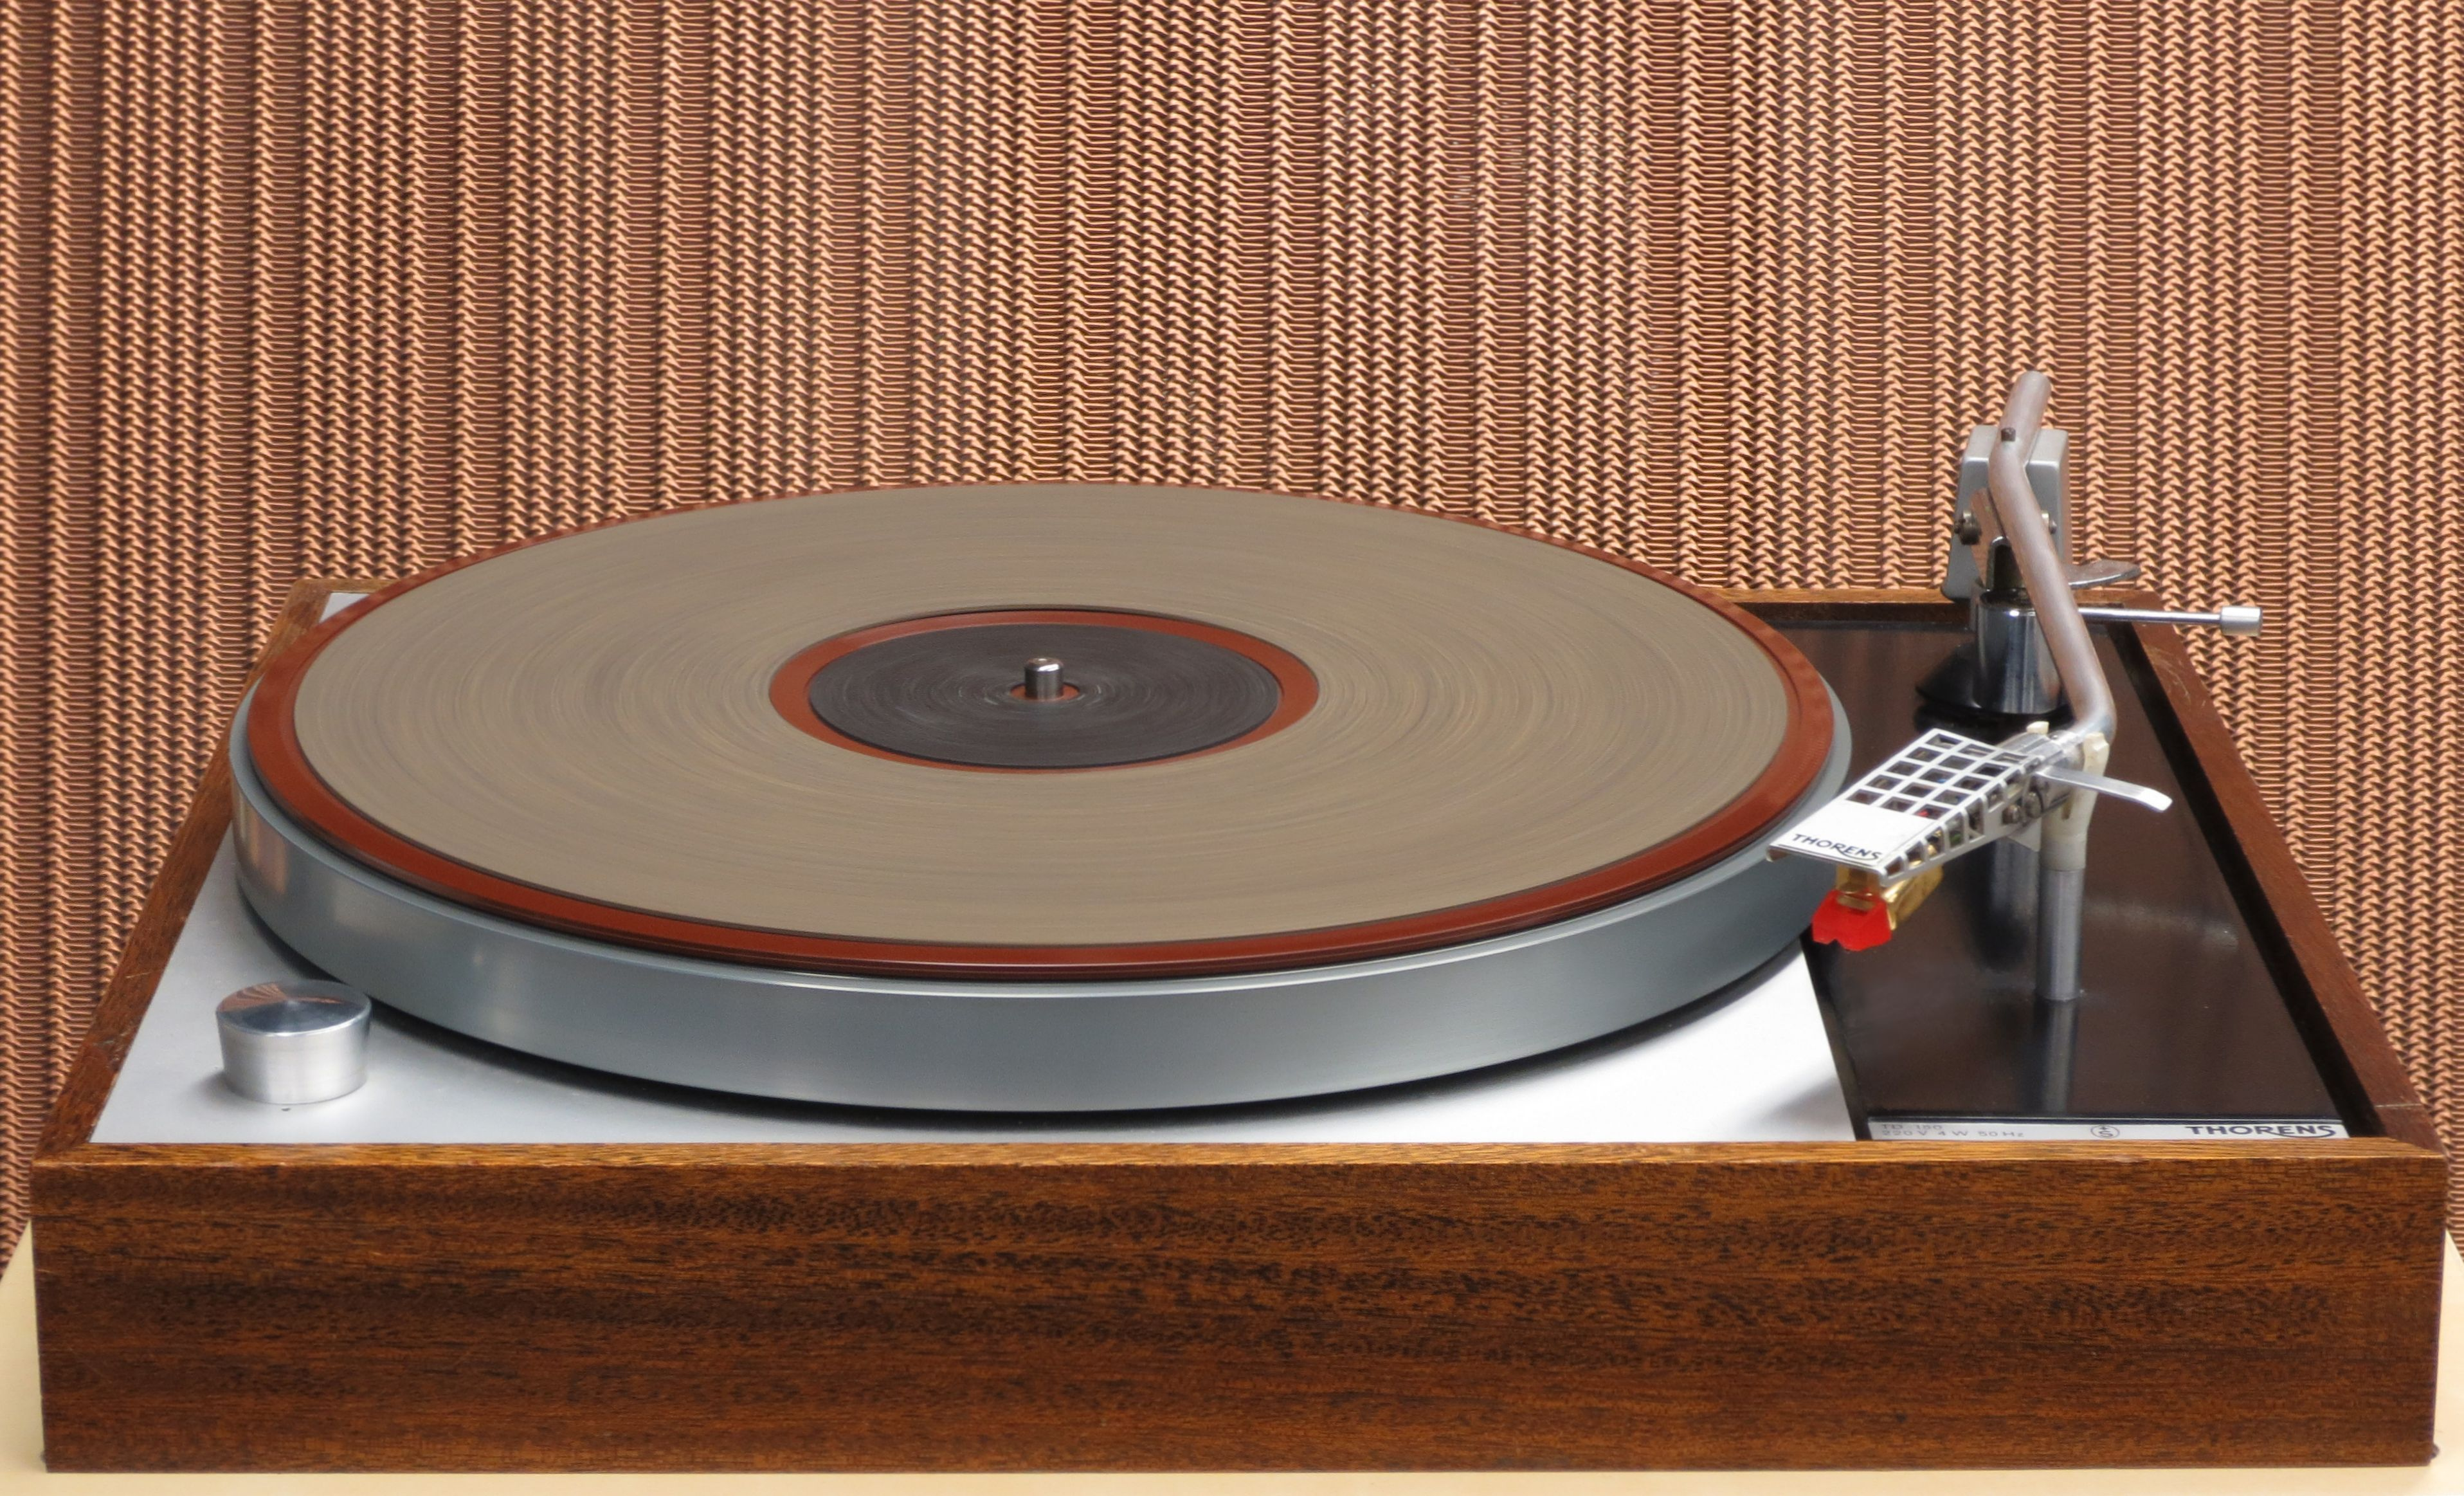 Thorens TD150 Turntable Review